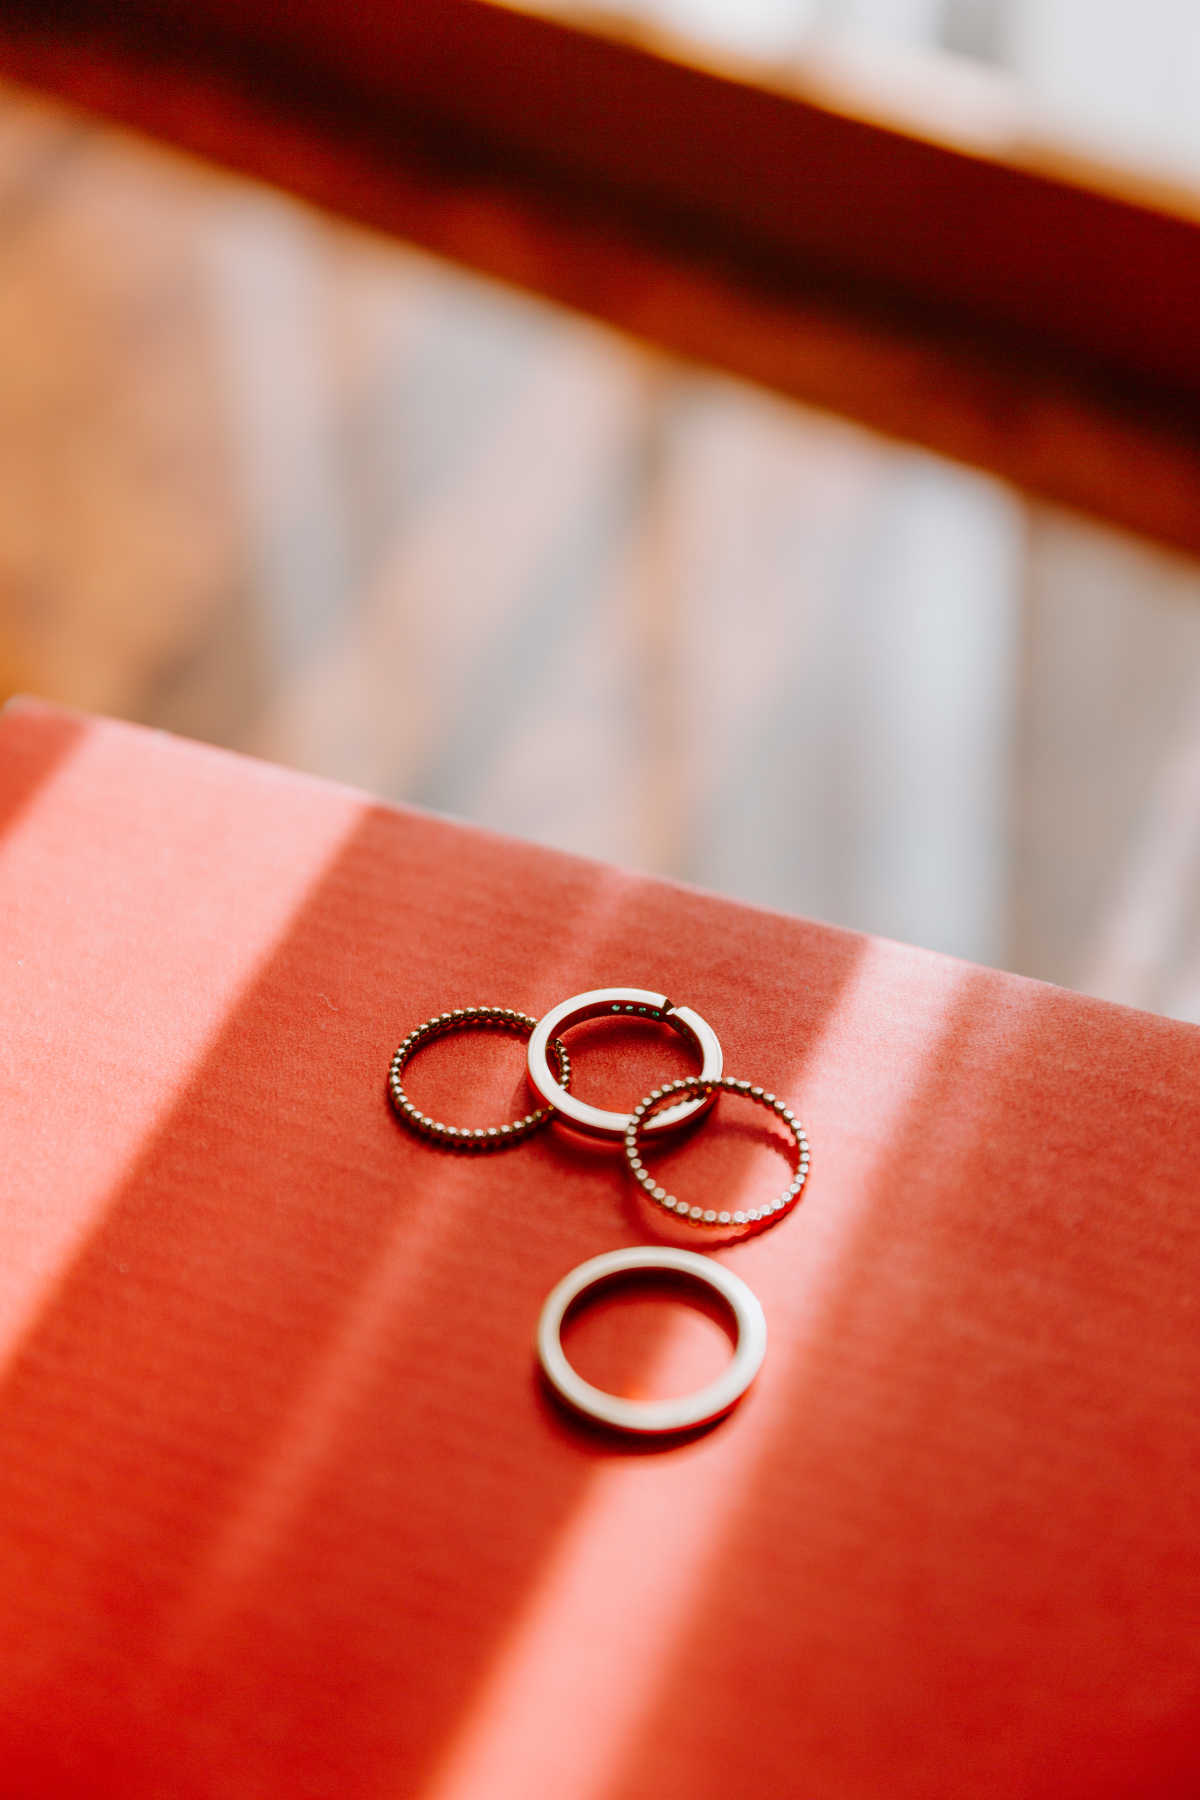 A set of four rings lying on a red surface